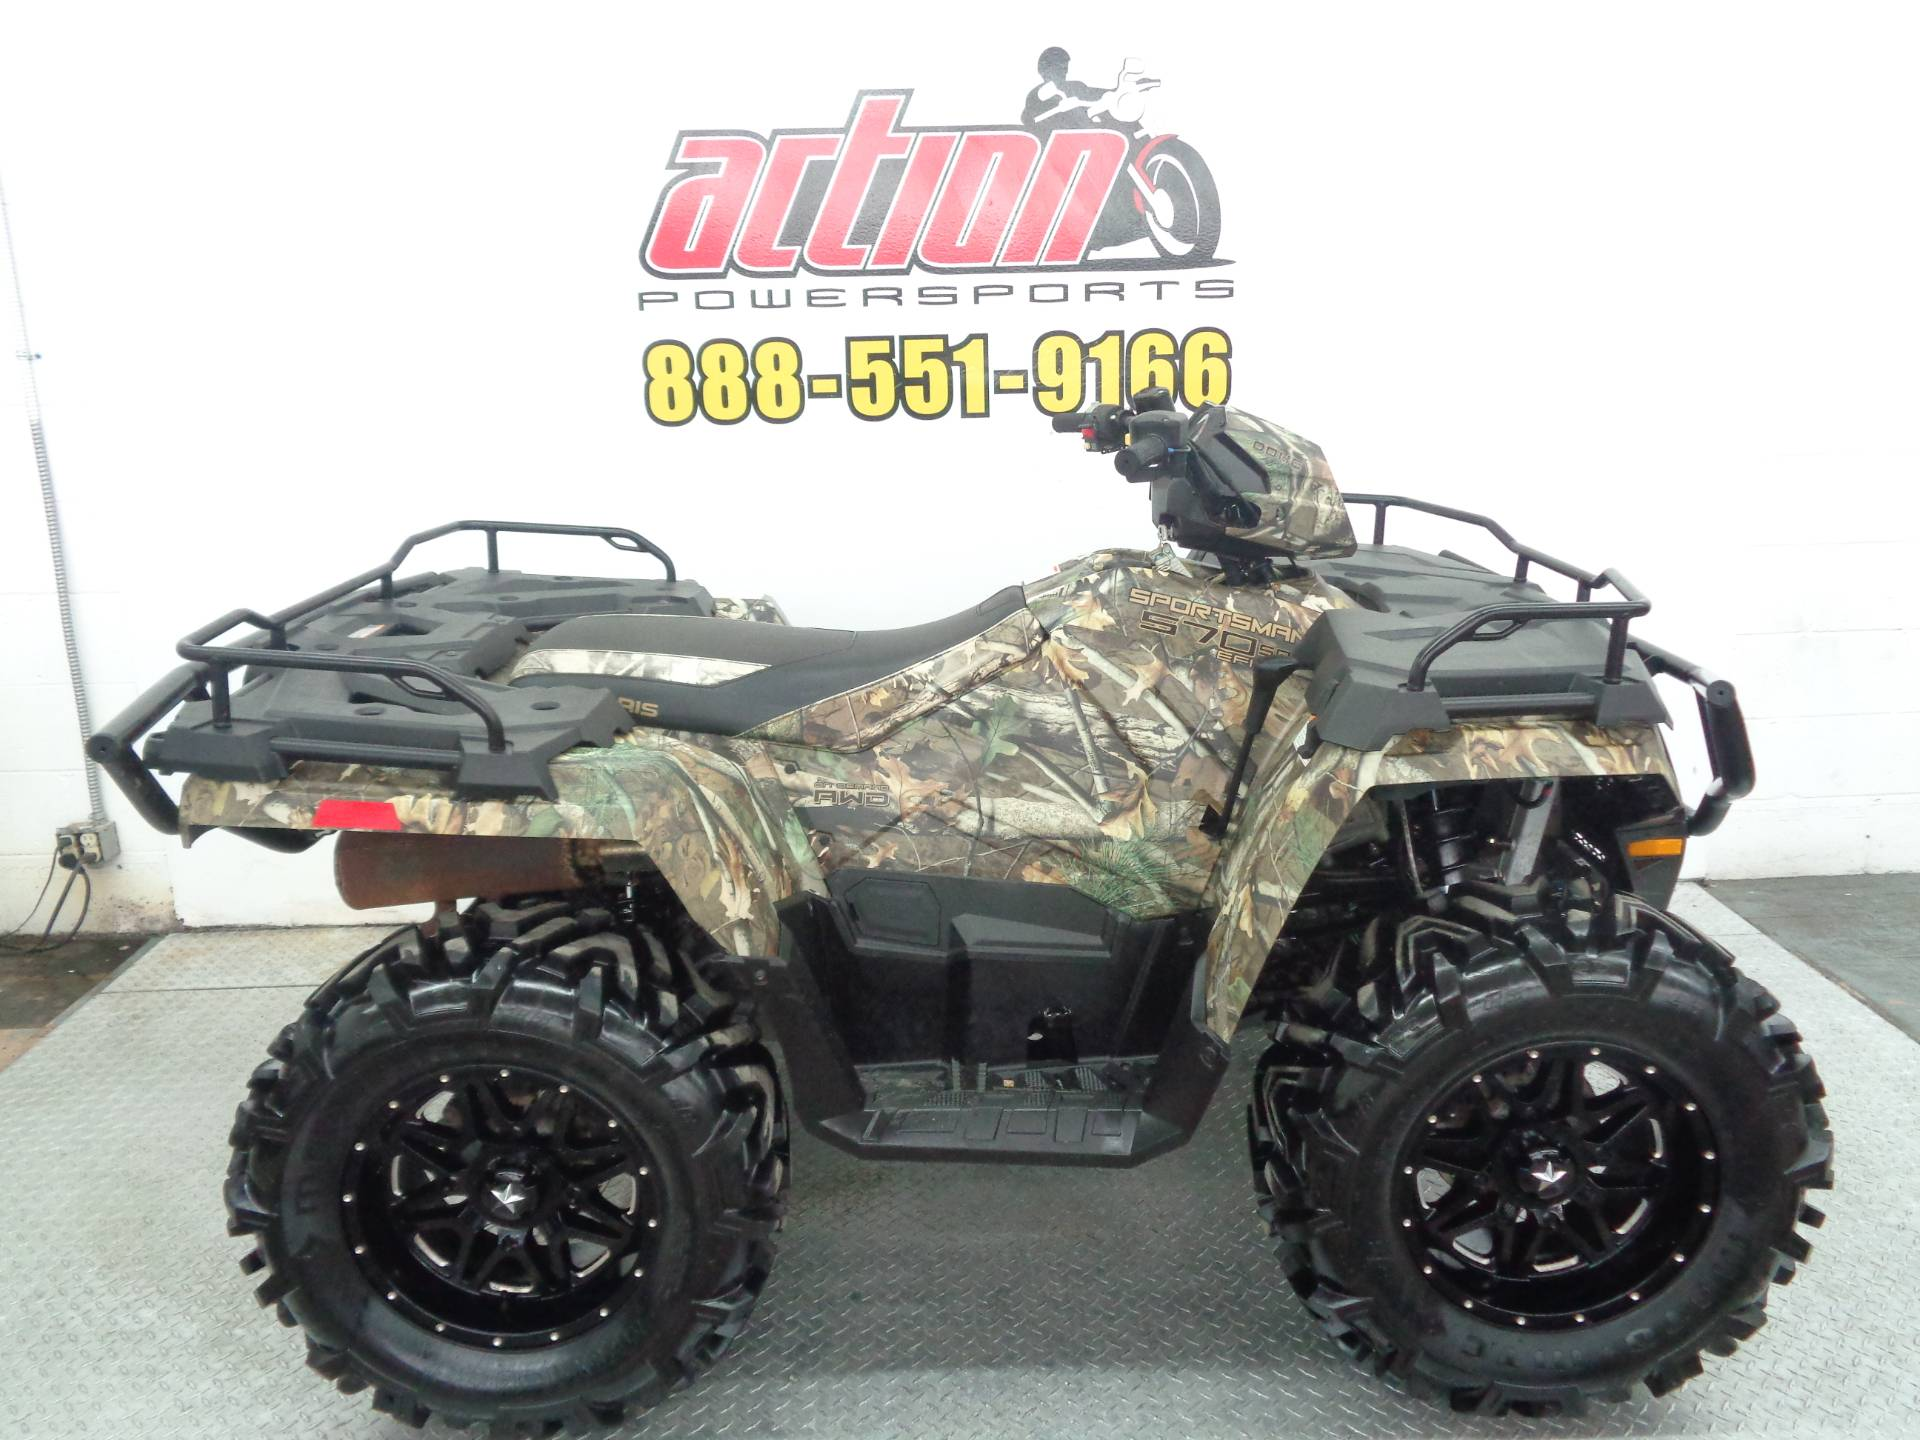 2016 Polaris Sportsman 570 Sp In Tulsa Oklahoma Photo 1